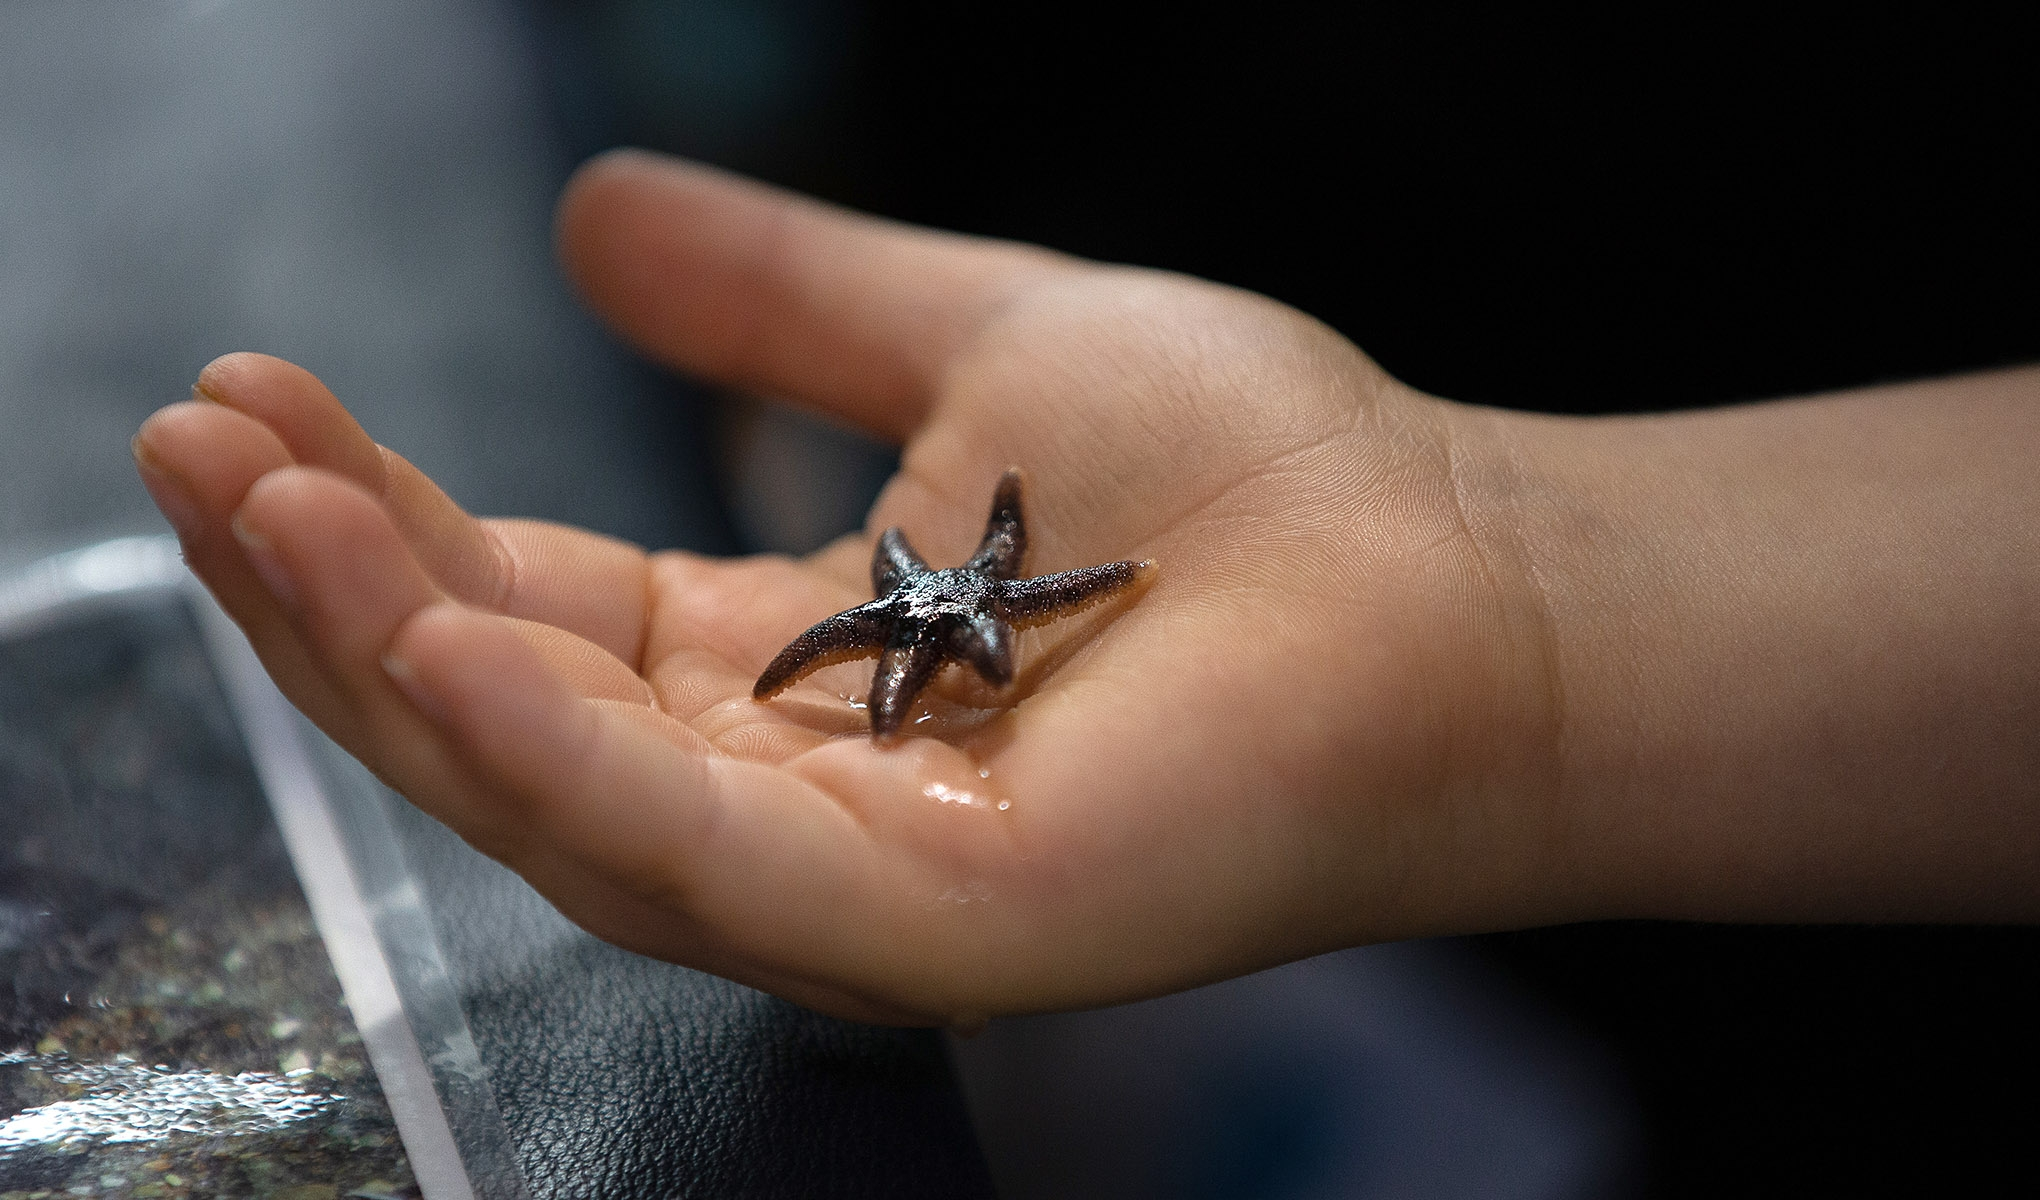 Small sea star in the palm of a hand